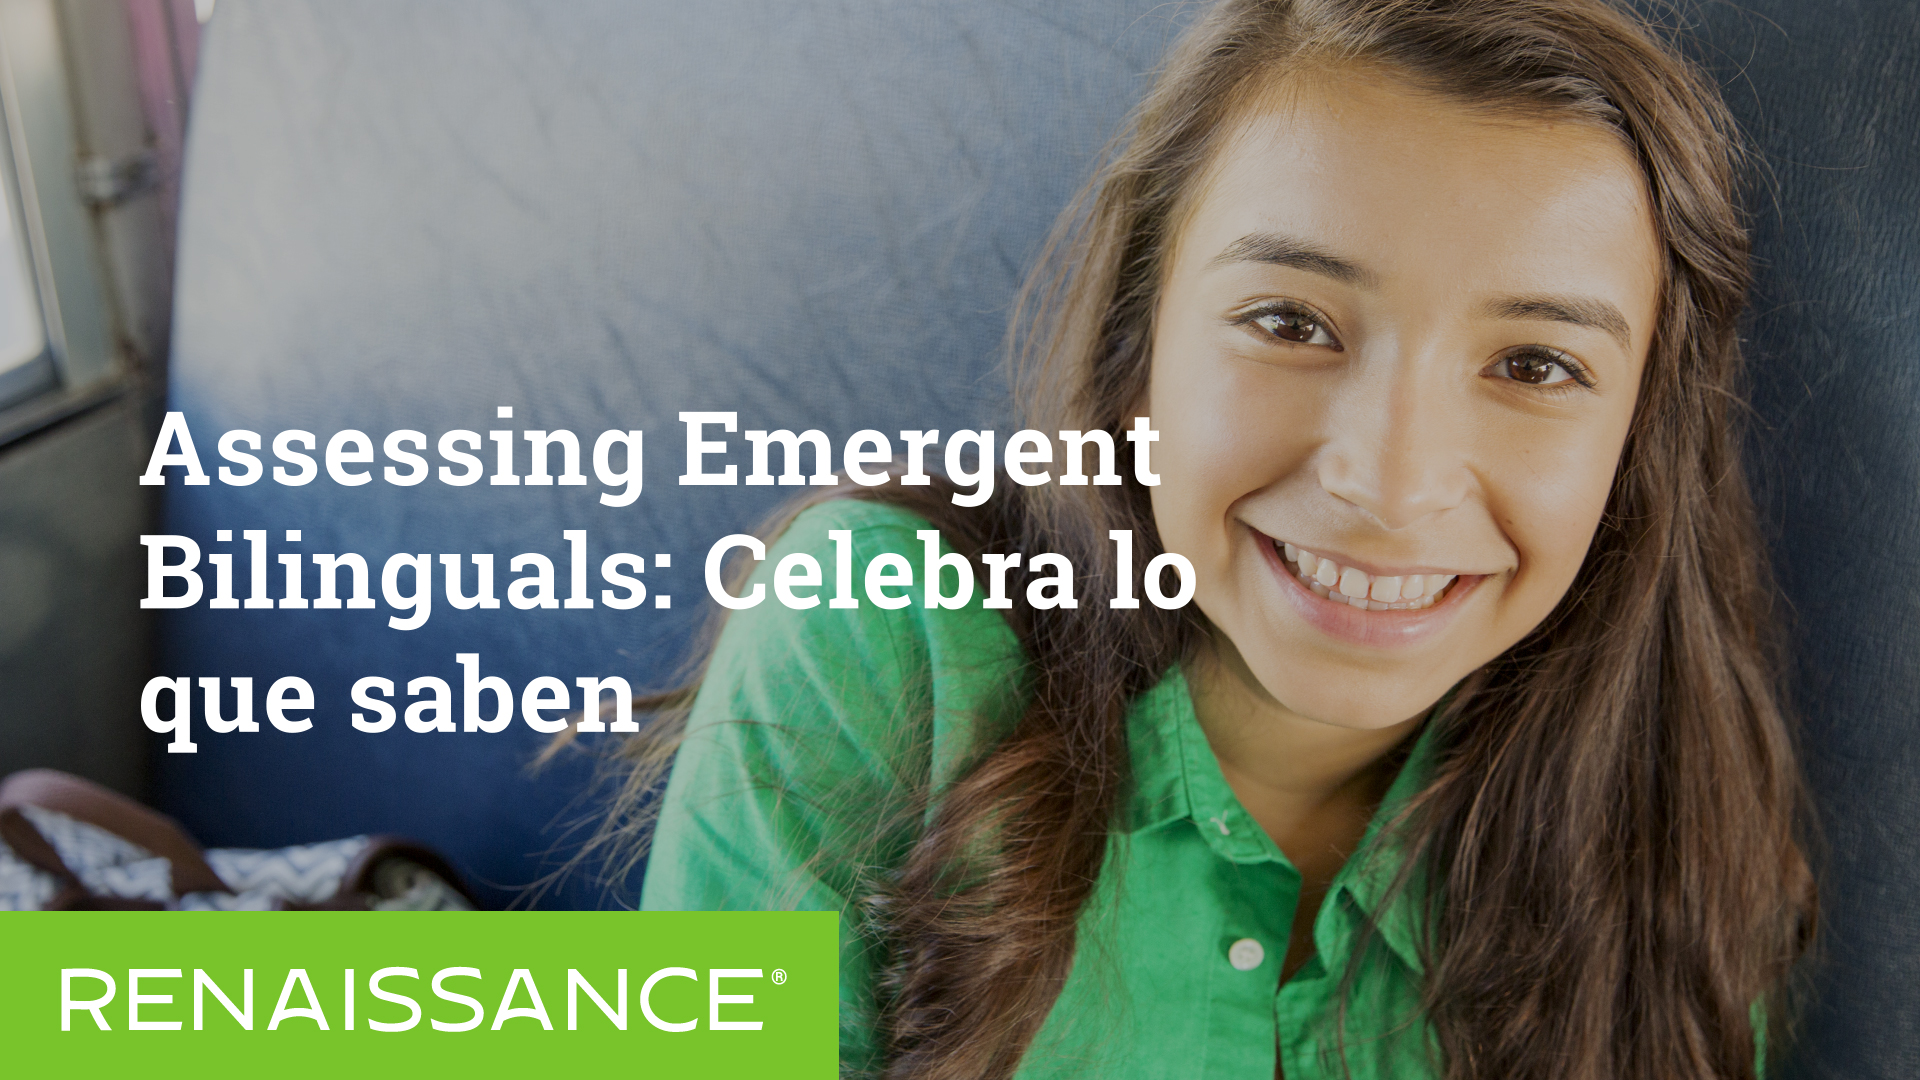 Assessing Emergent Bilinguals: Celebra lo que saben